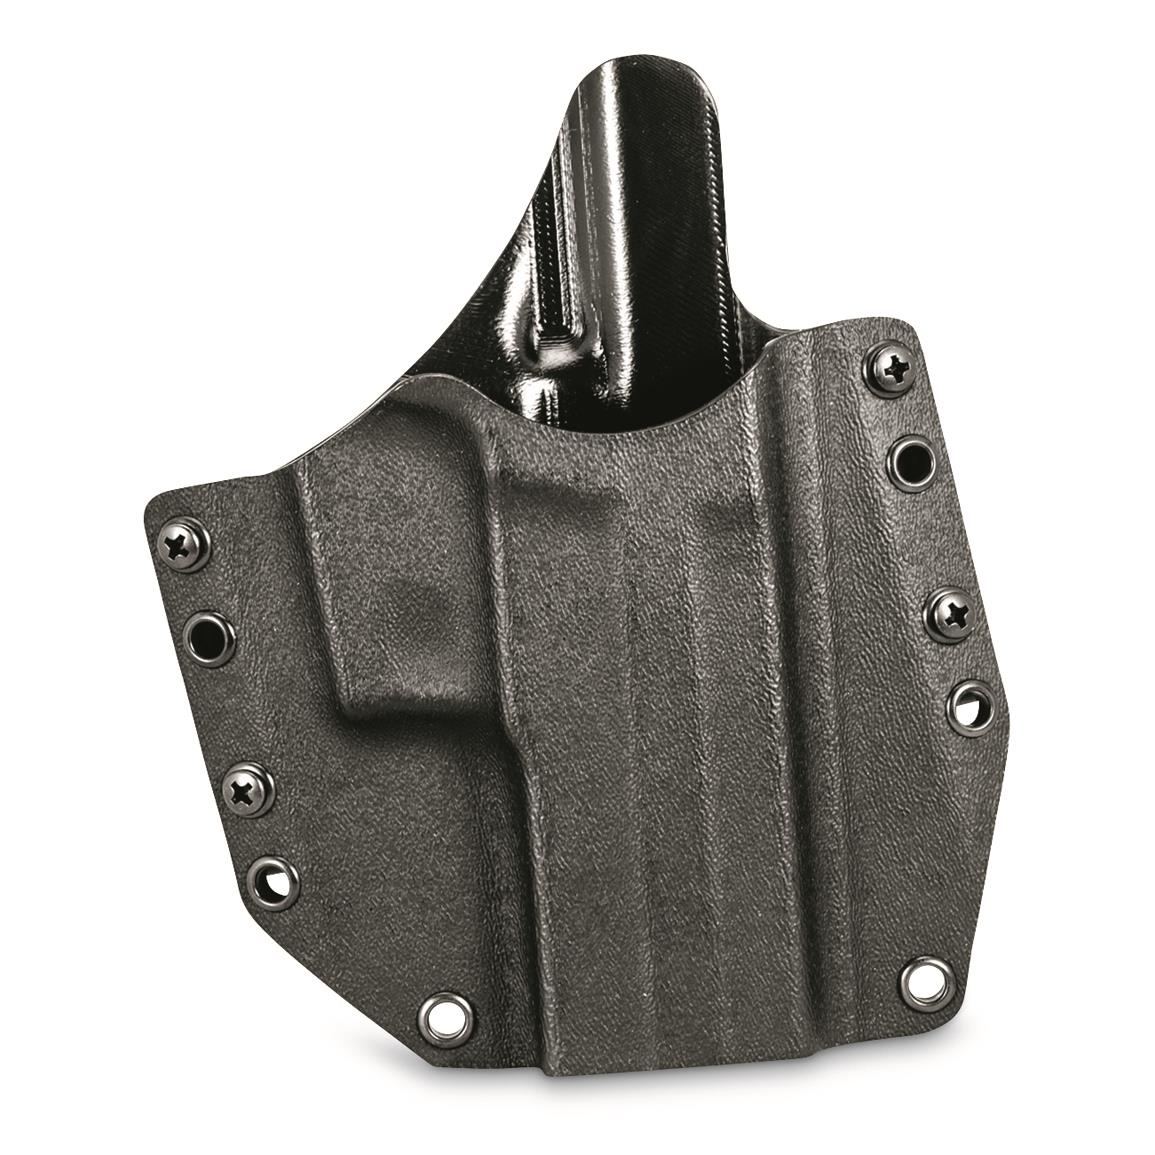 Mission First Tactical Sig Sauer P229 9mm With Rail OWB Holster